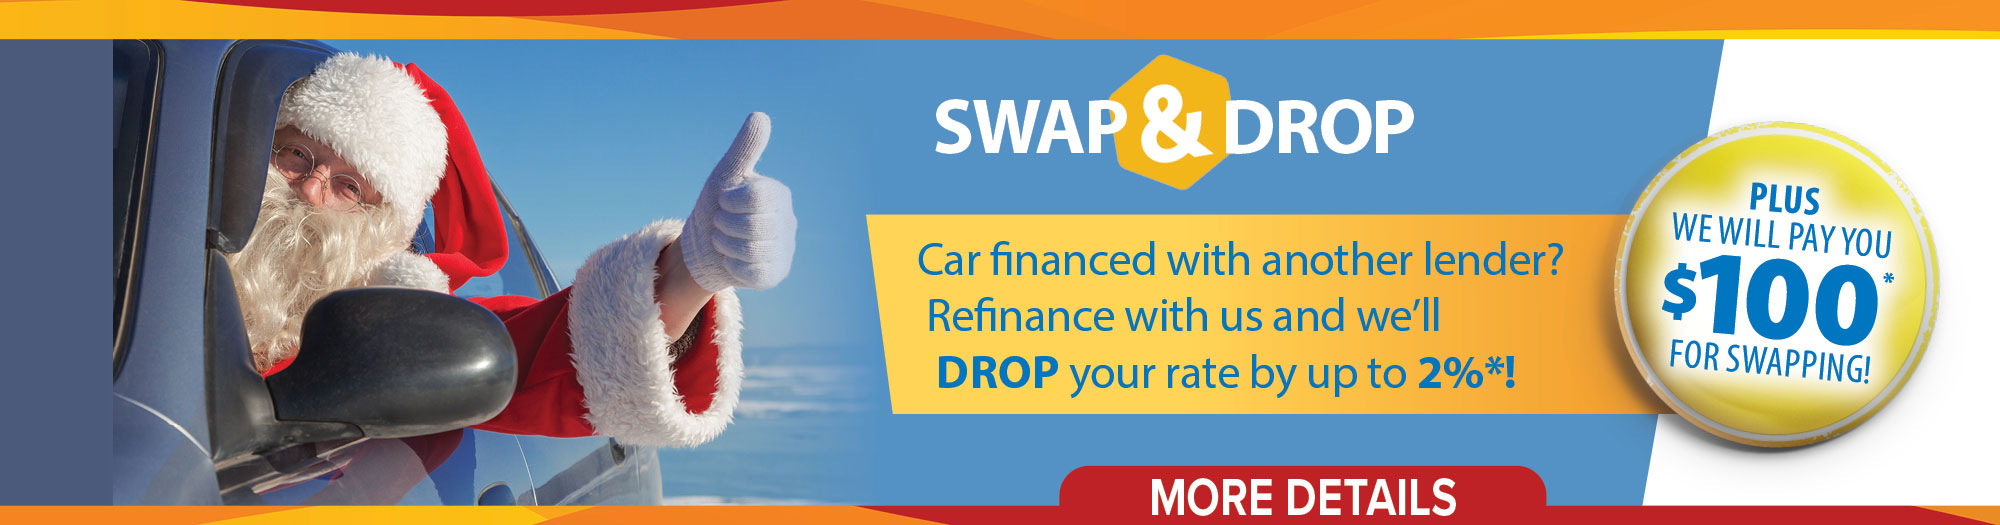 Car loan financed with another lender? Refinance with us & we'll drop your interest rate by up to 2%